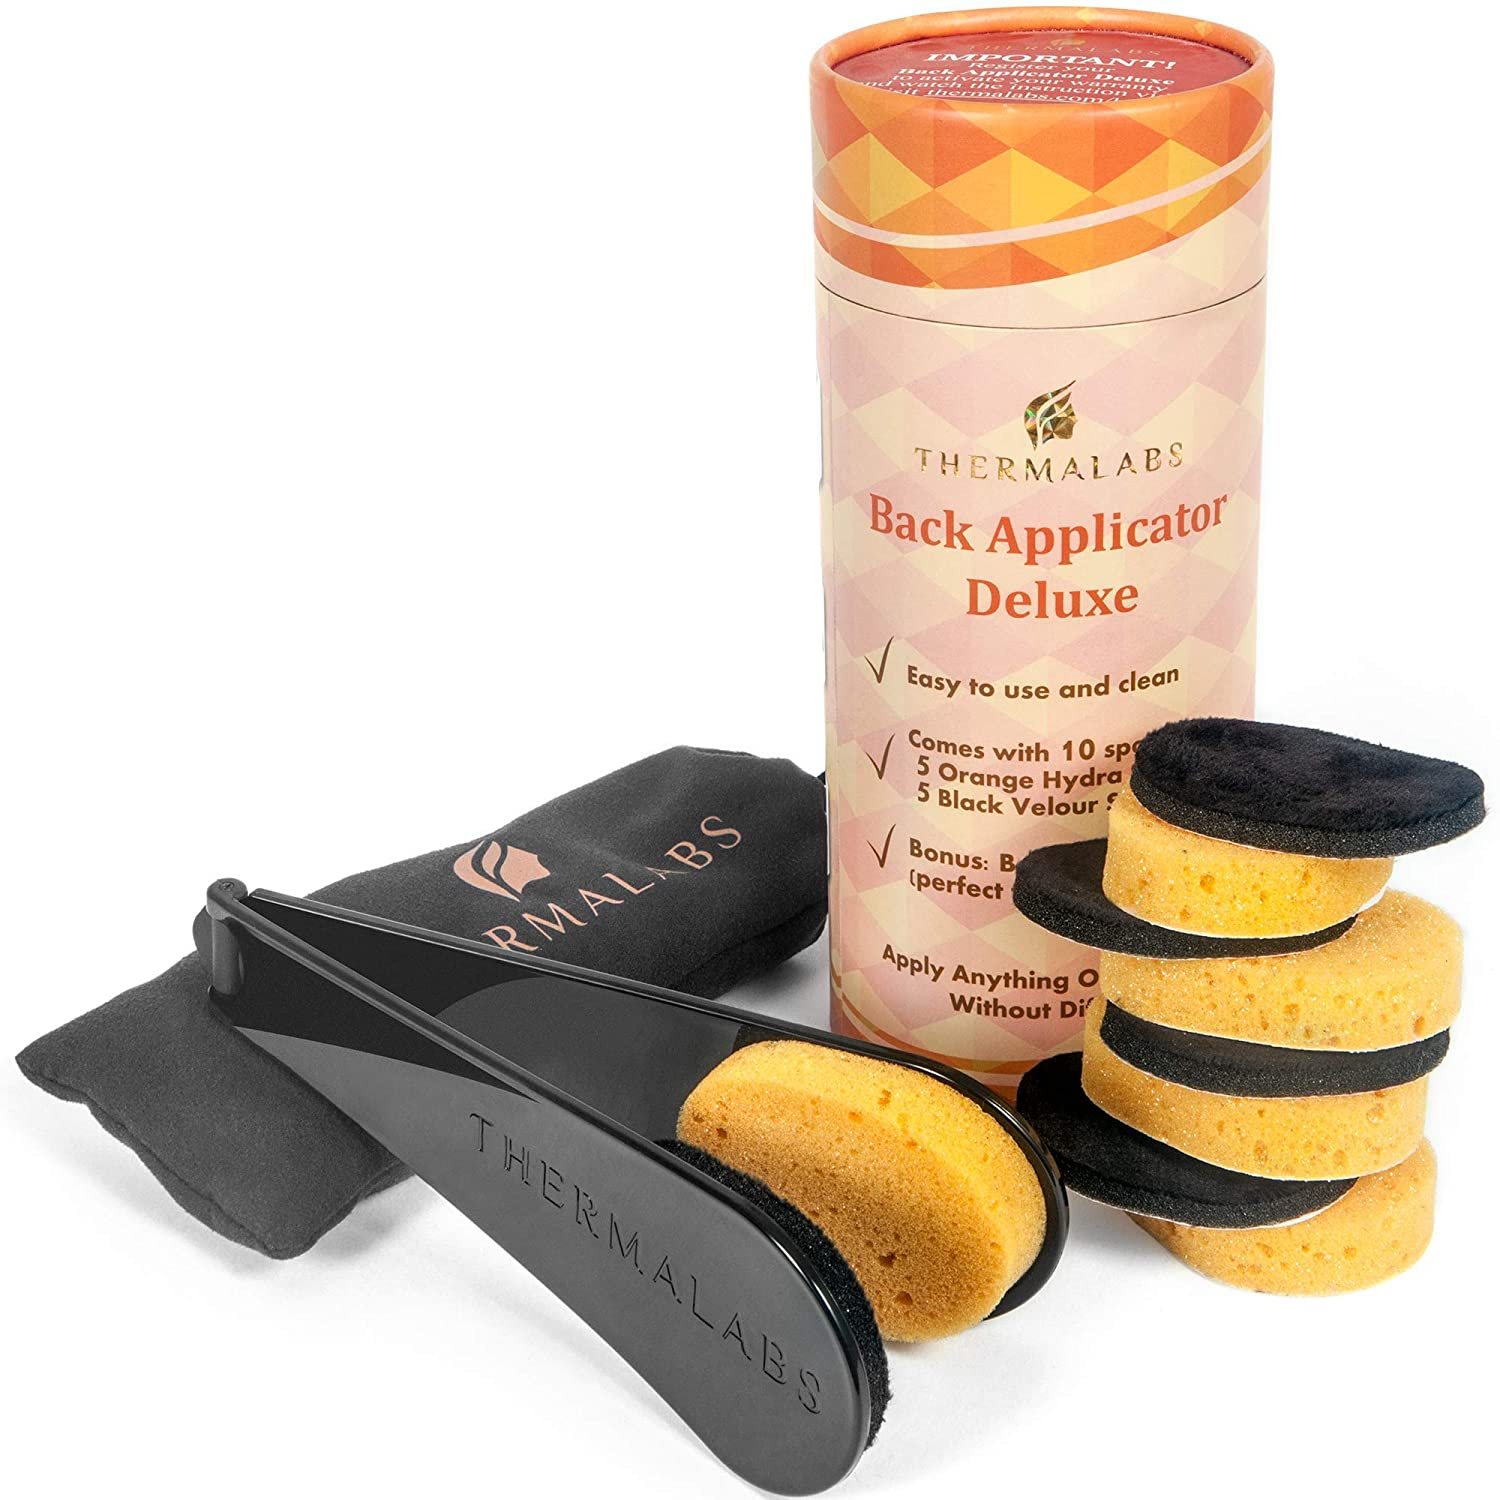 Back Applicator Deluxe: Apply Lotion by Yourself on Unreachable Parts of Your Body! Folding Application Set With Long Reach Handle Stick. Comes With 5 Sponges and a Prestigious Pouch Thermalabs TRML-BCK